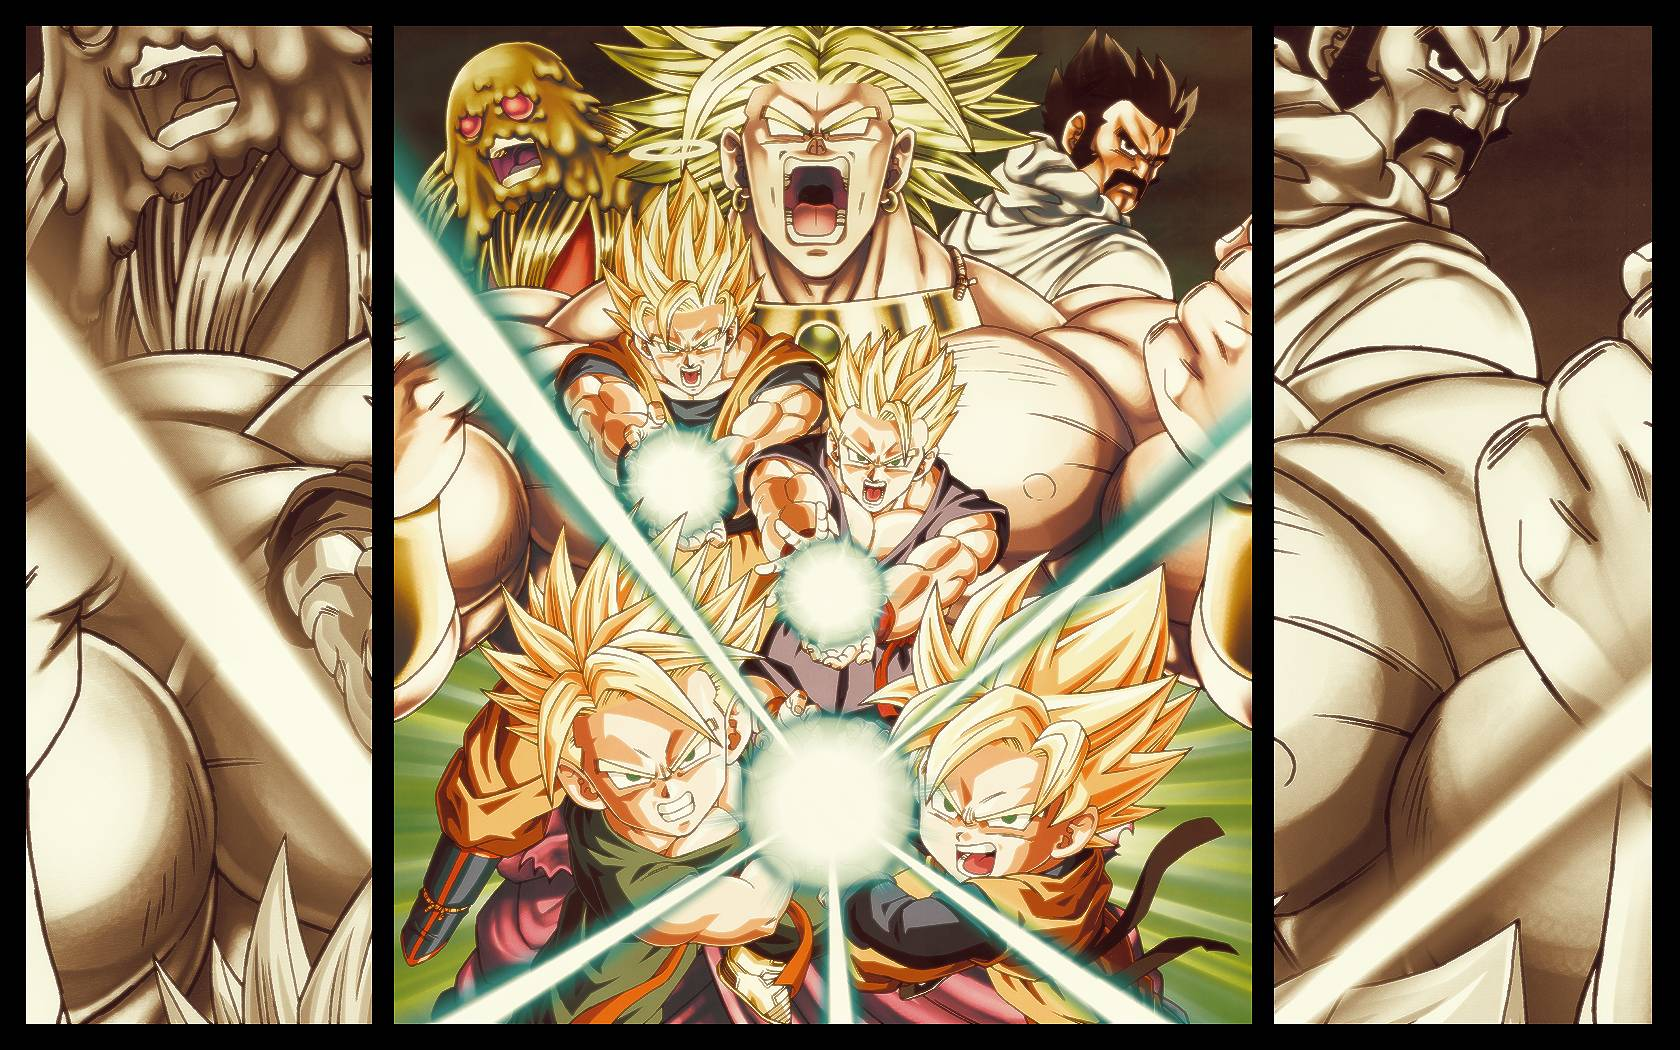 Dragon Ball Z Hd Wallpapers Free Pictures On Greepx